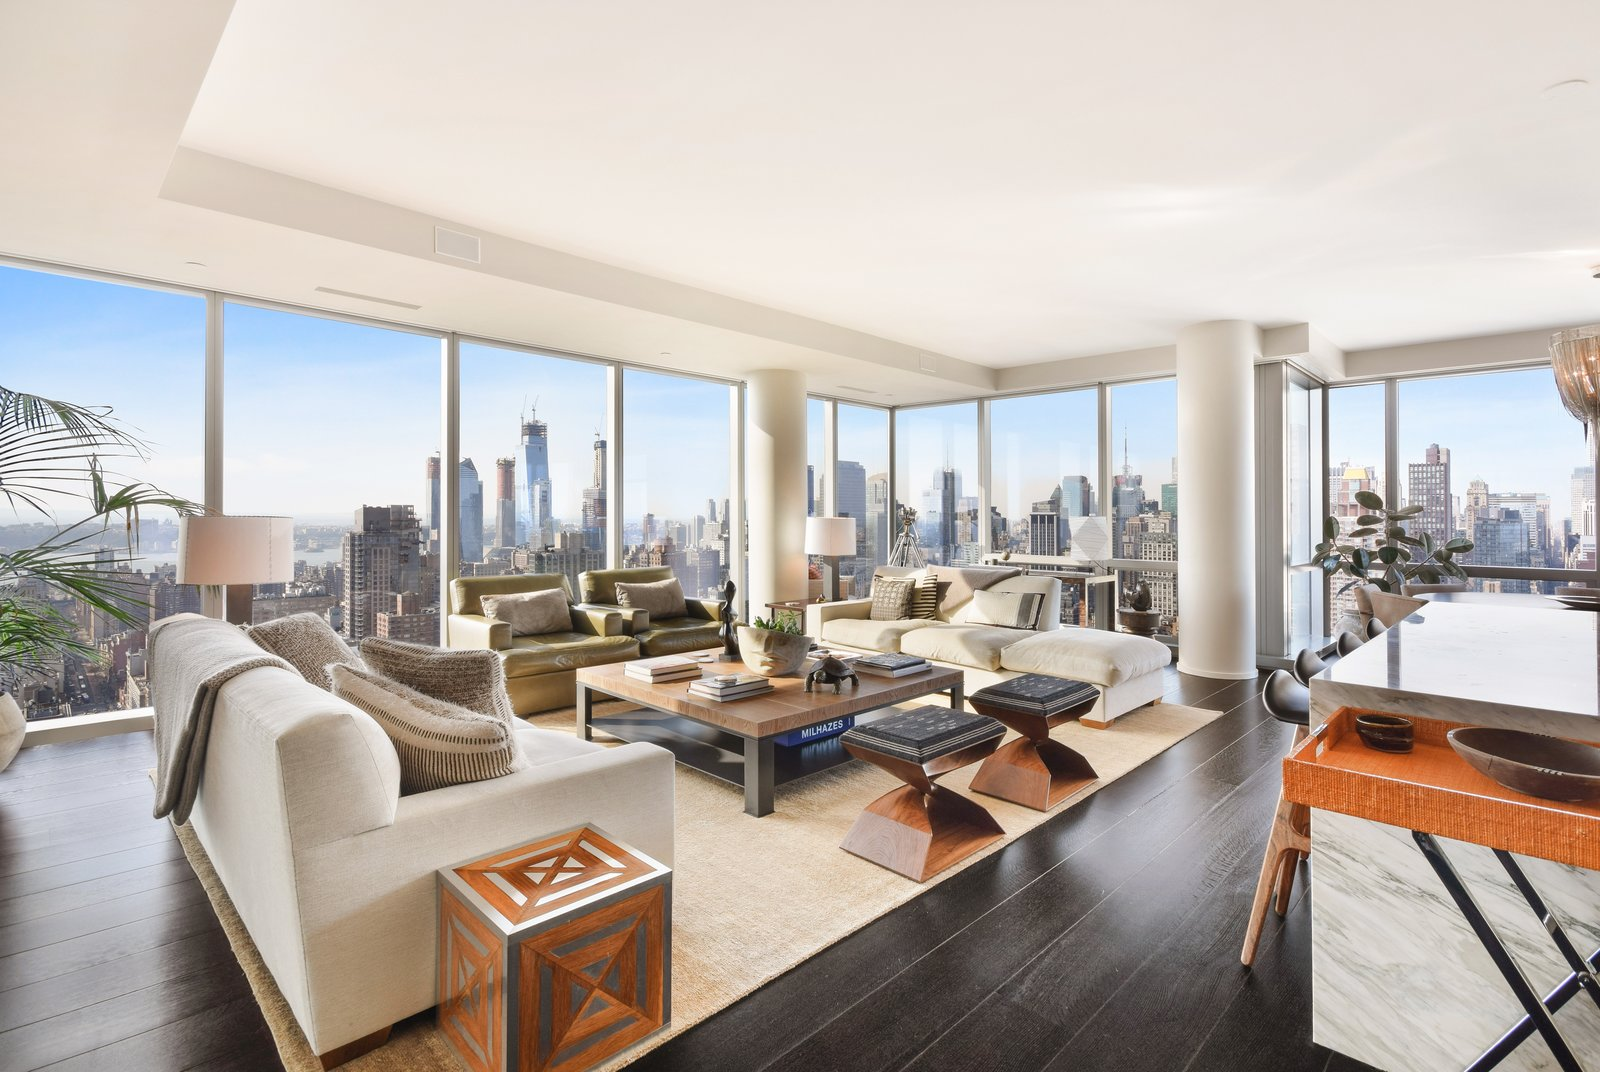 Tom Brady And Gisele Bündchen S Former Manhattan Apartment Is Listed For 14m Dwell